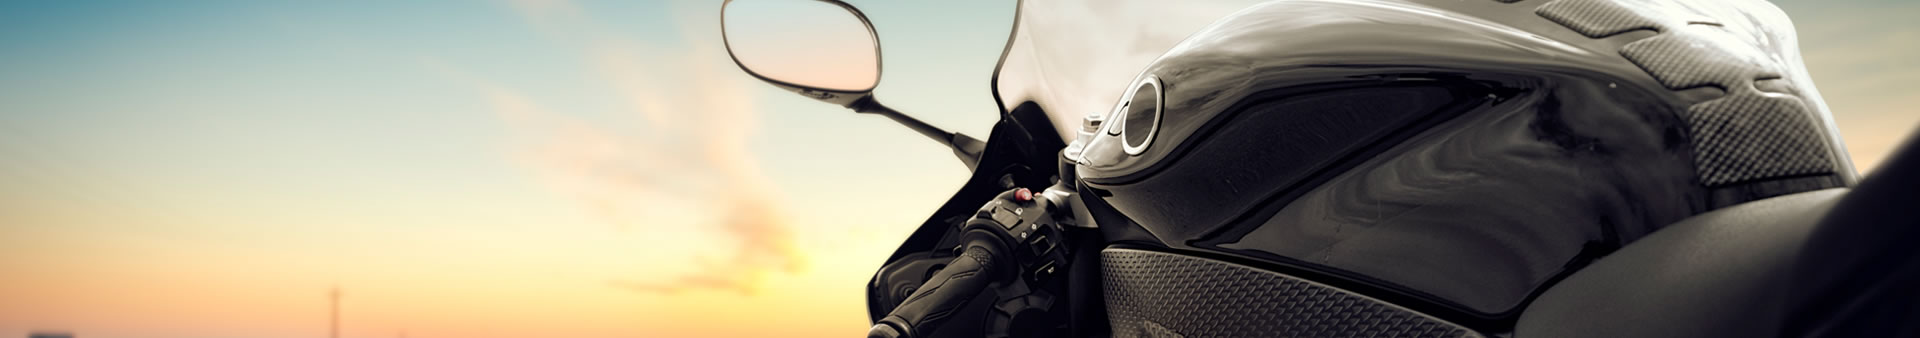 Ducati Carbon Accessories Archives The Carbon King